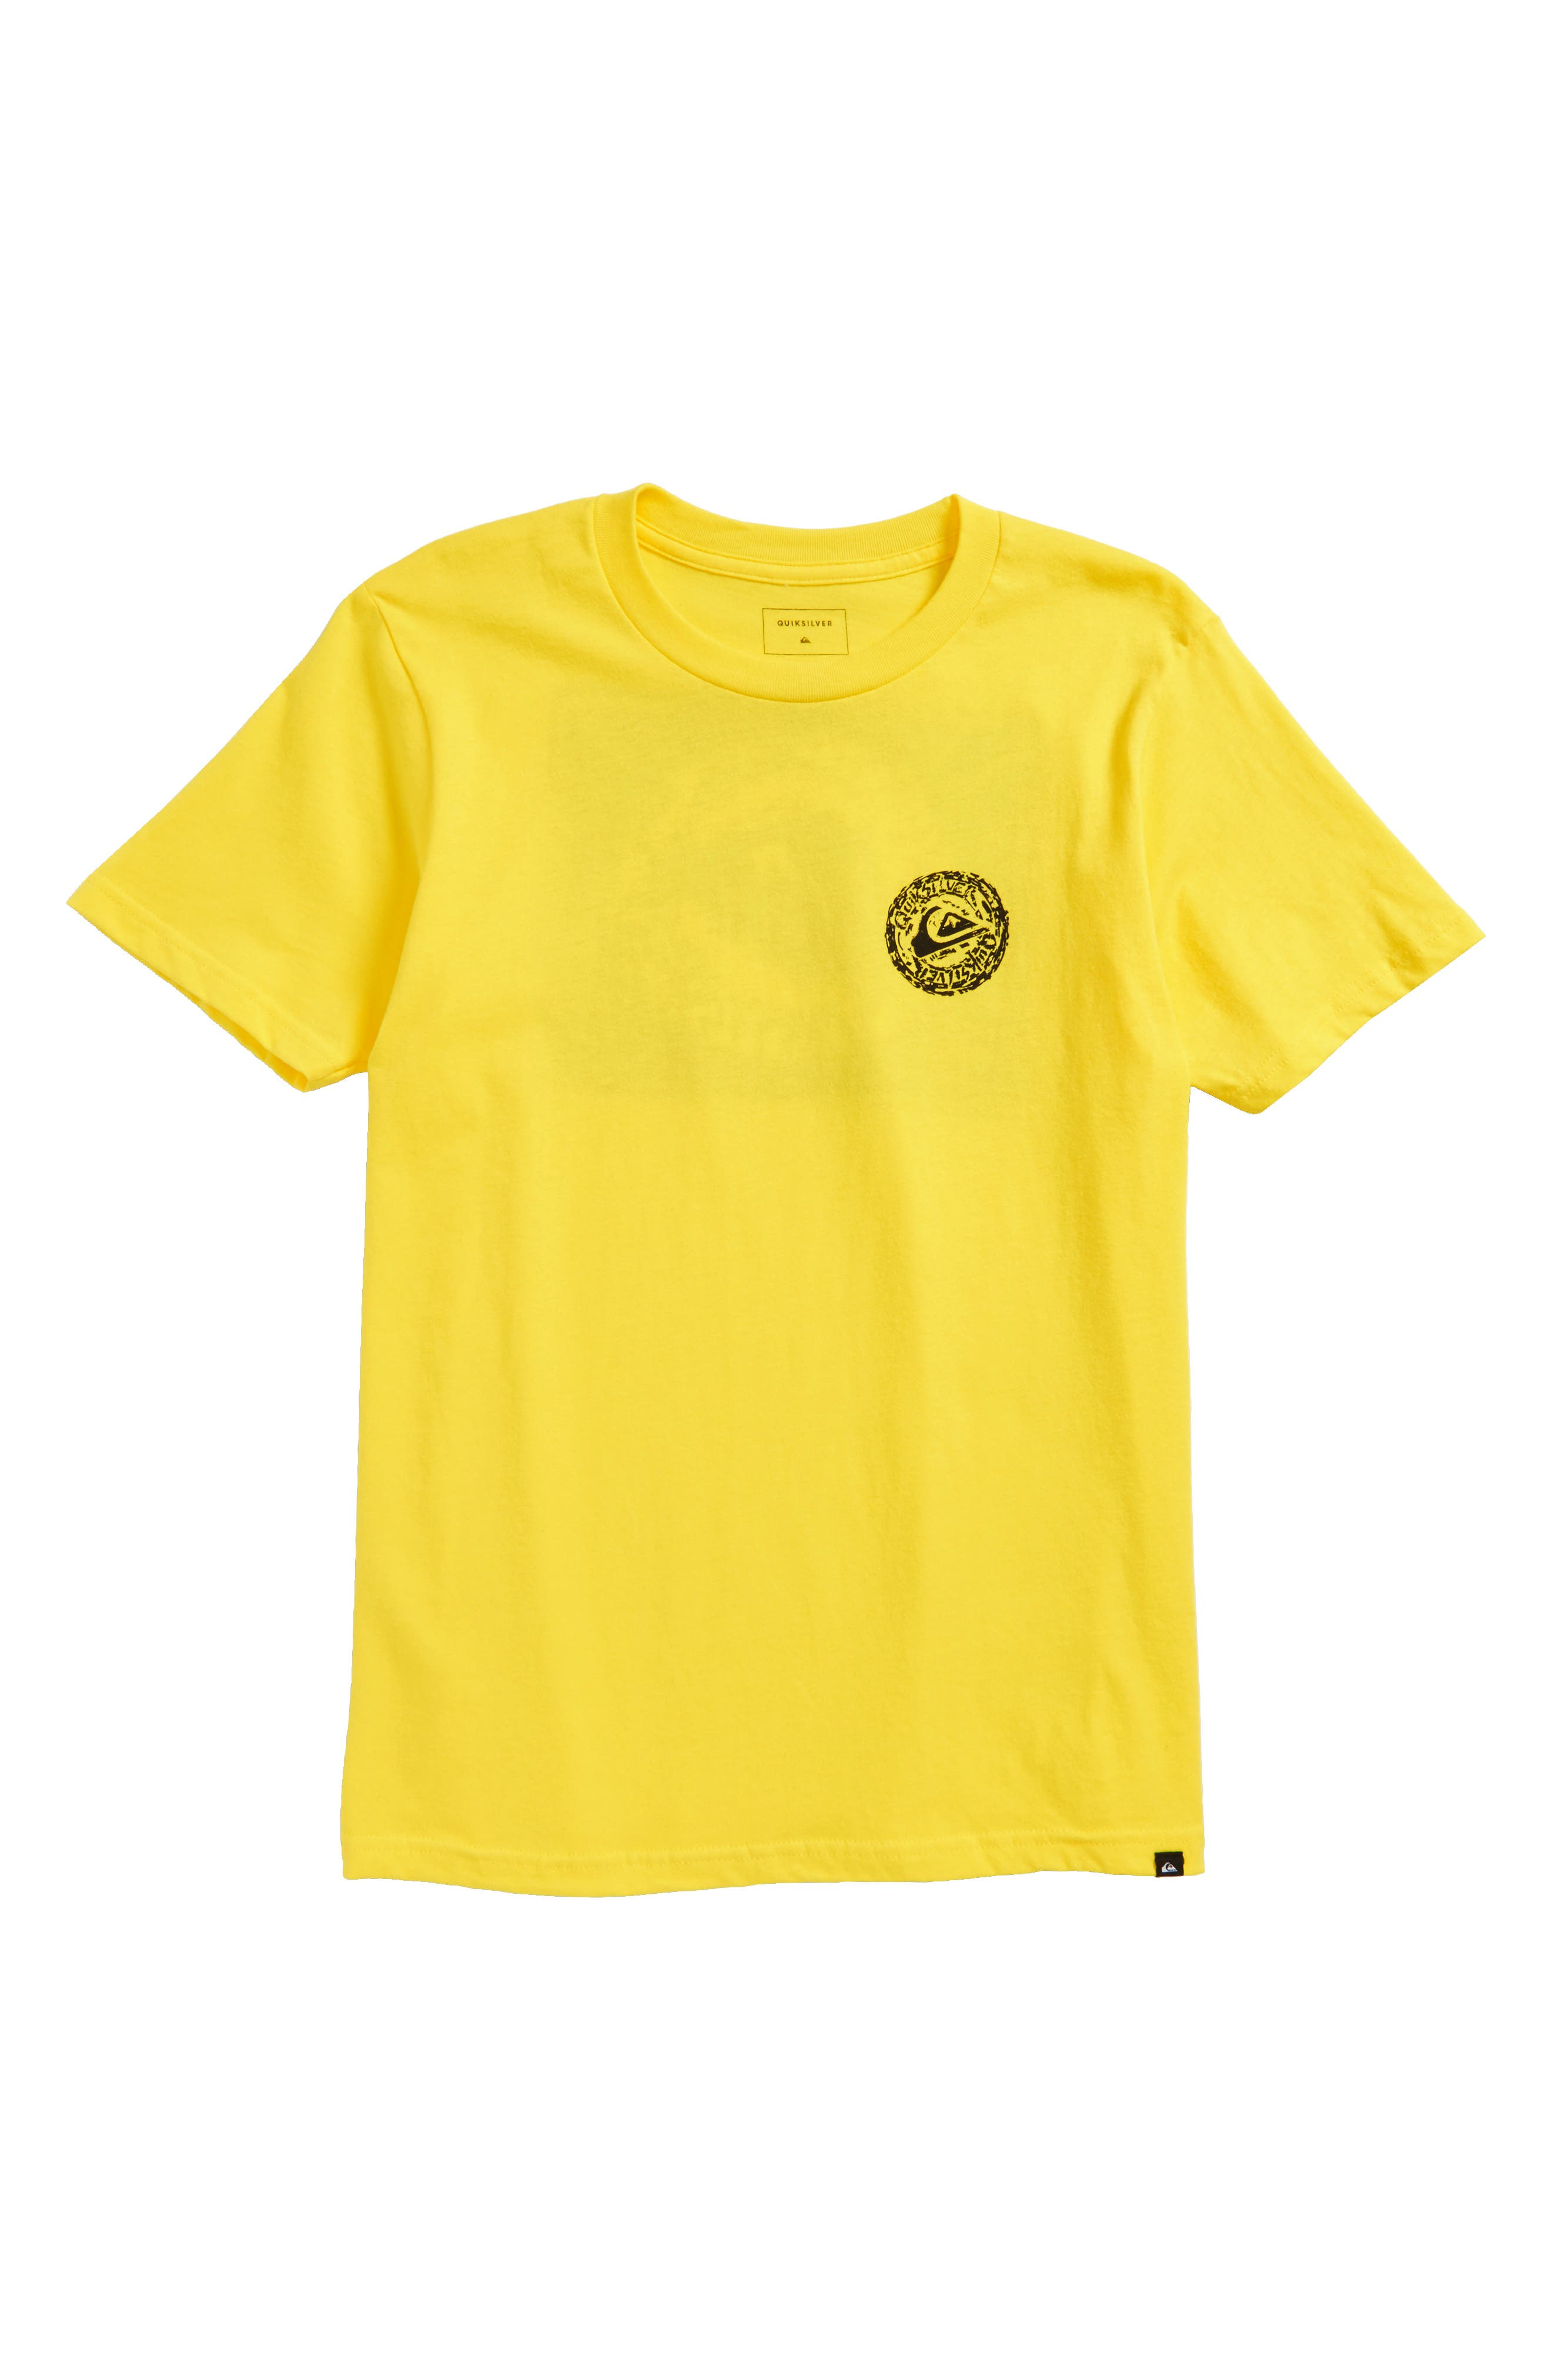 Elevens T-Shirt,                             Main thumbnail 2, color,